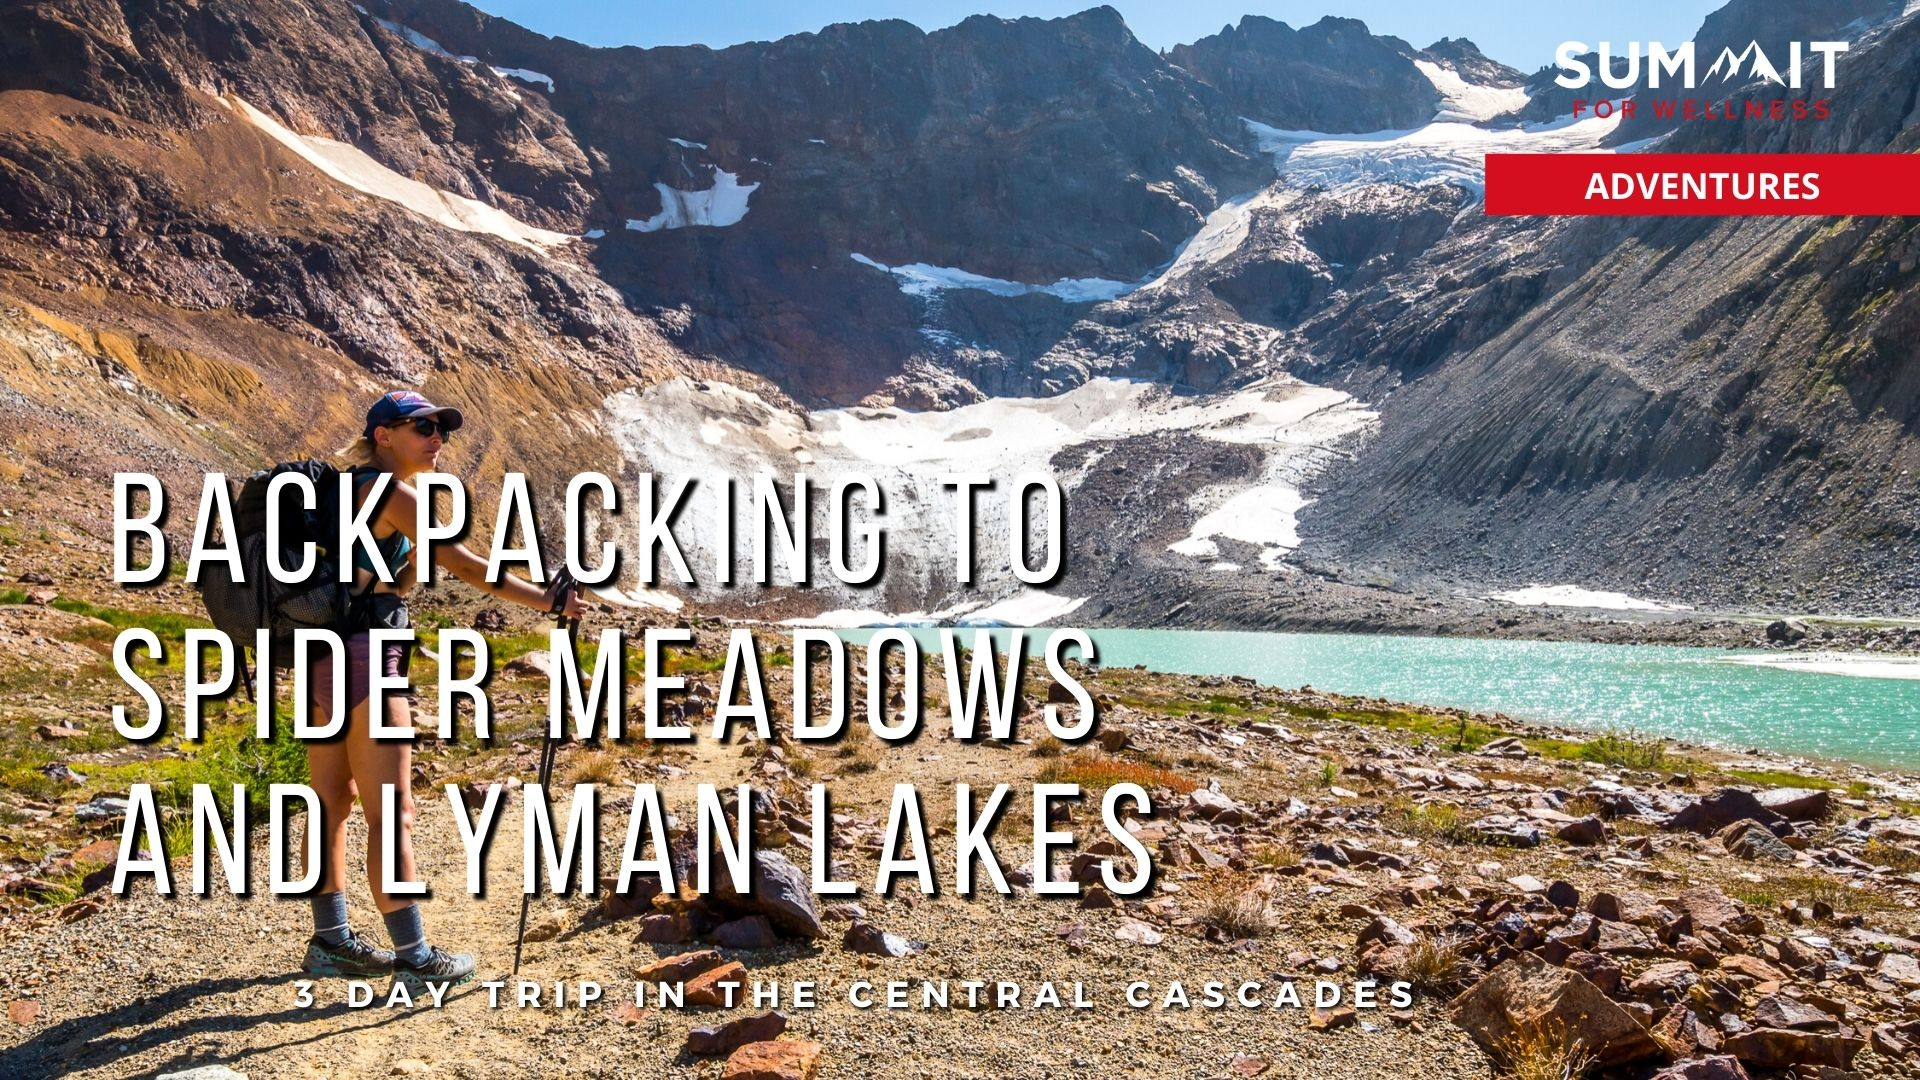 Enjoy a 3 day backpacking trip to Spider Meadows and Lyman Lakes